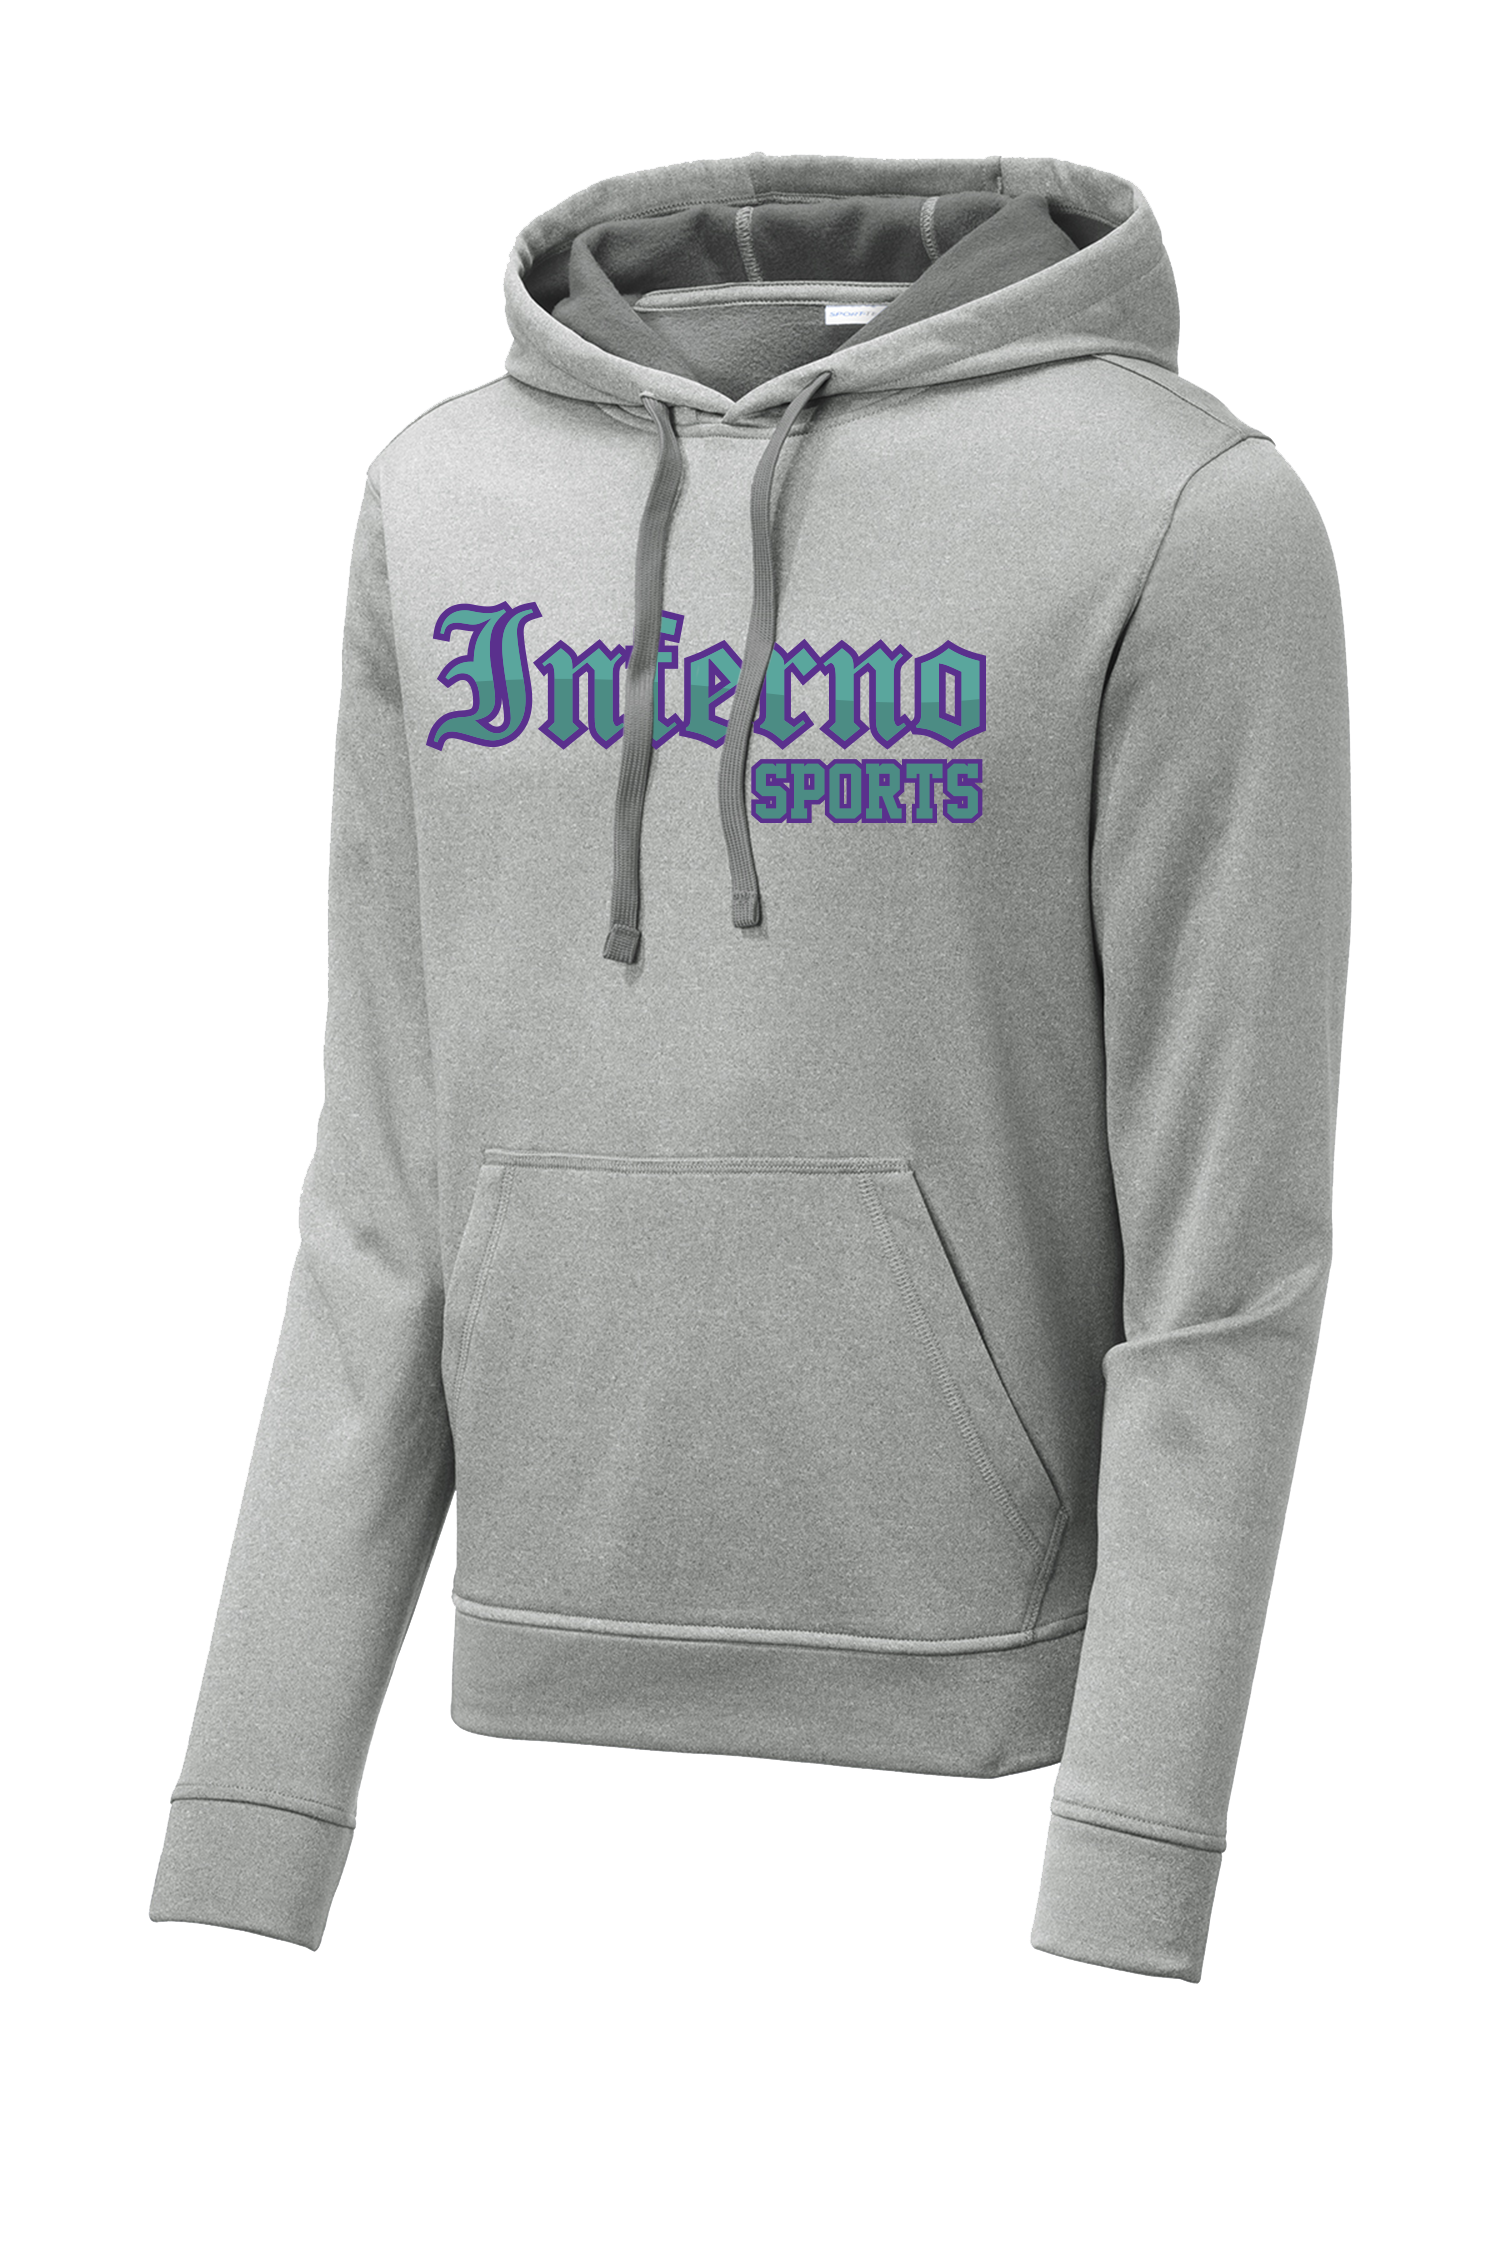 Inferno Sports Heather Fleece Hooded Pullover - Teal/Purple